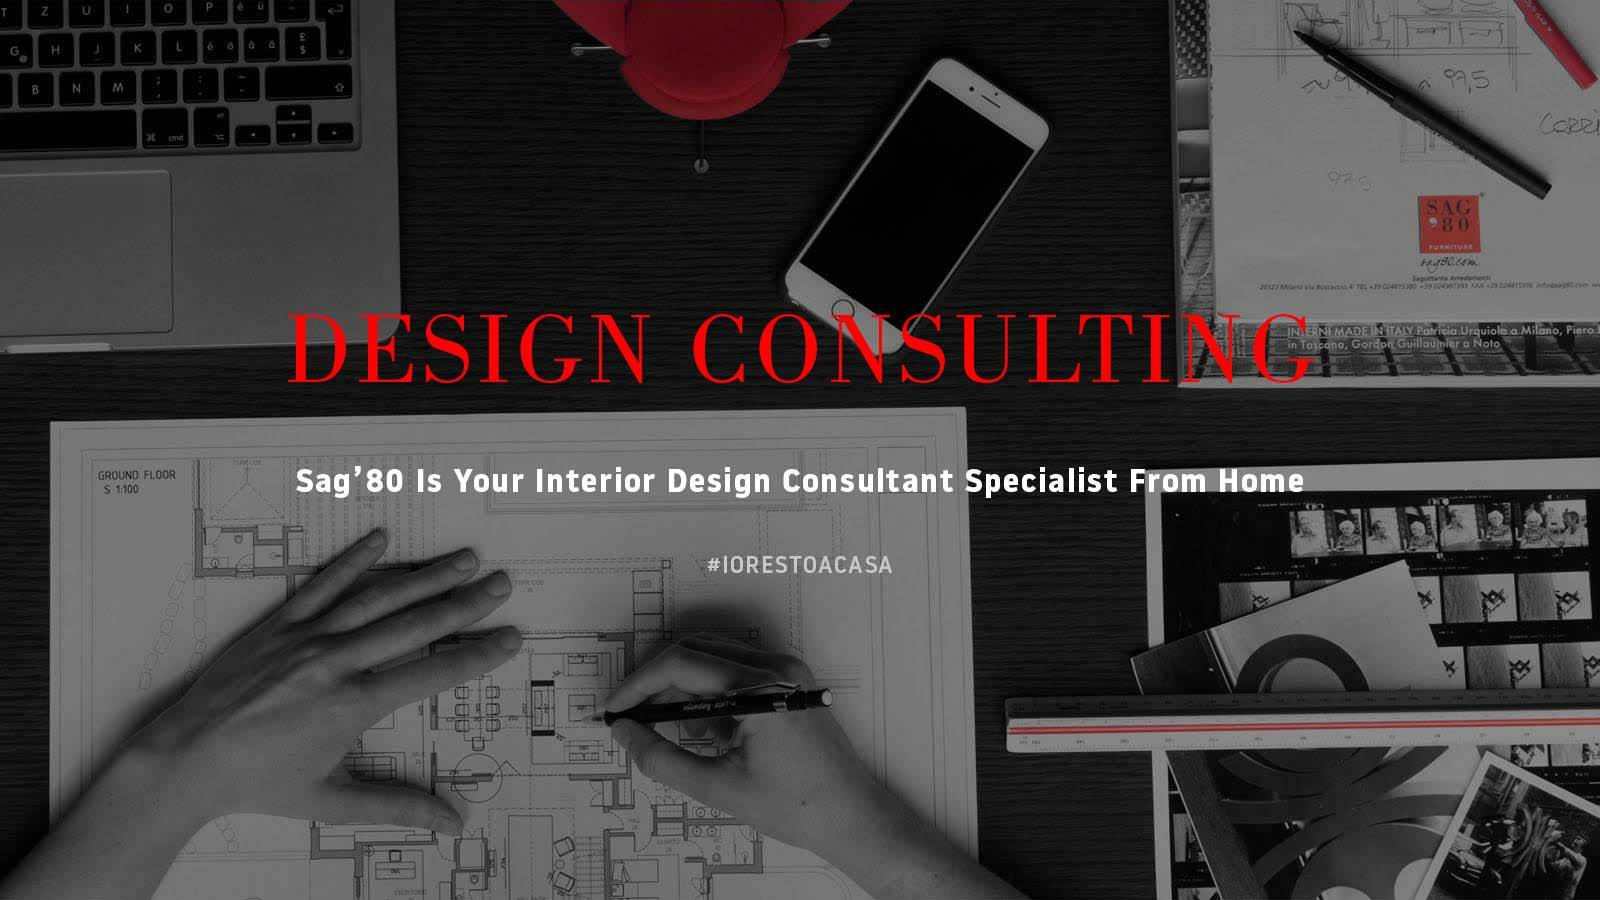 design consulting from home Sag'80 GROUP